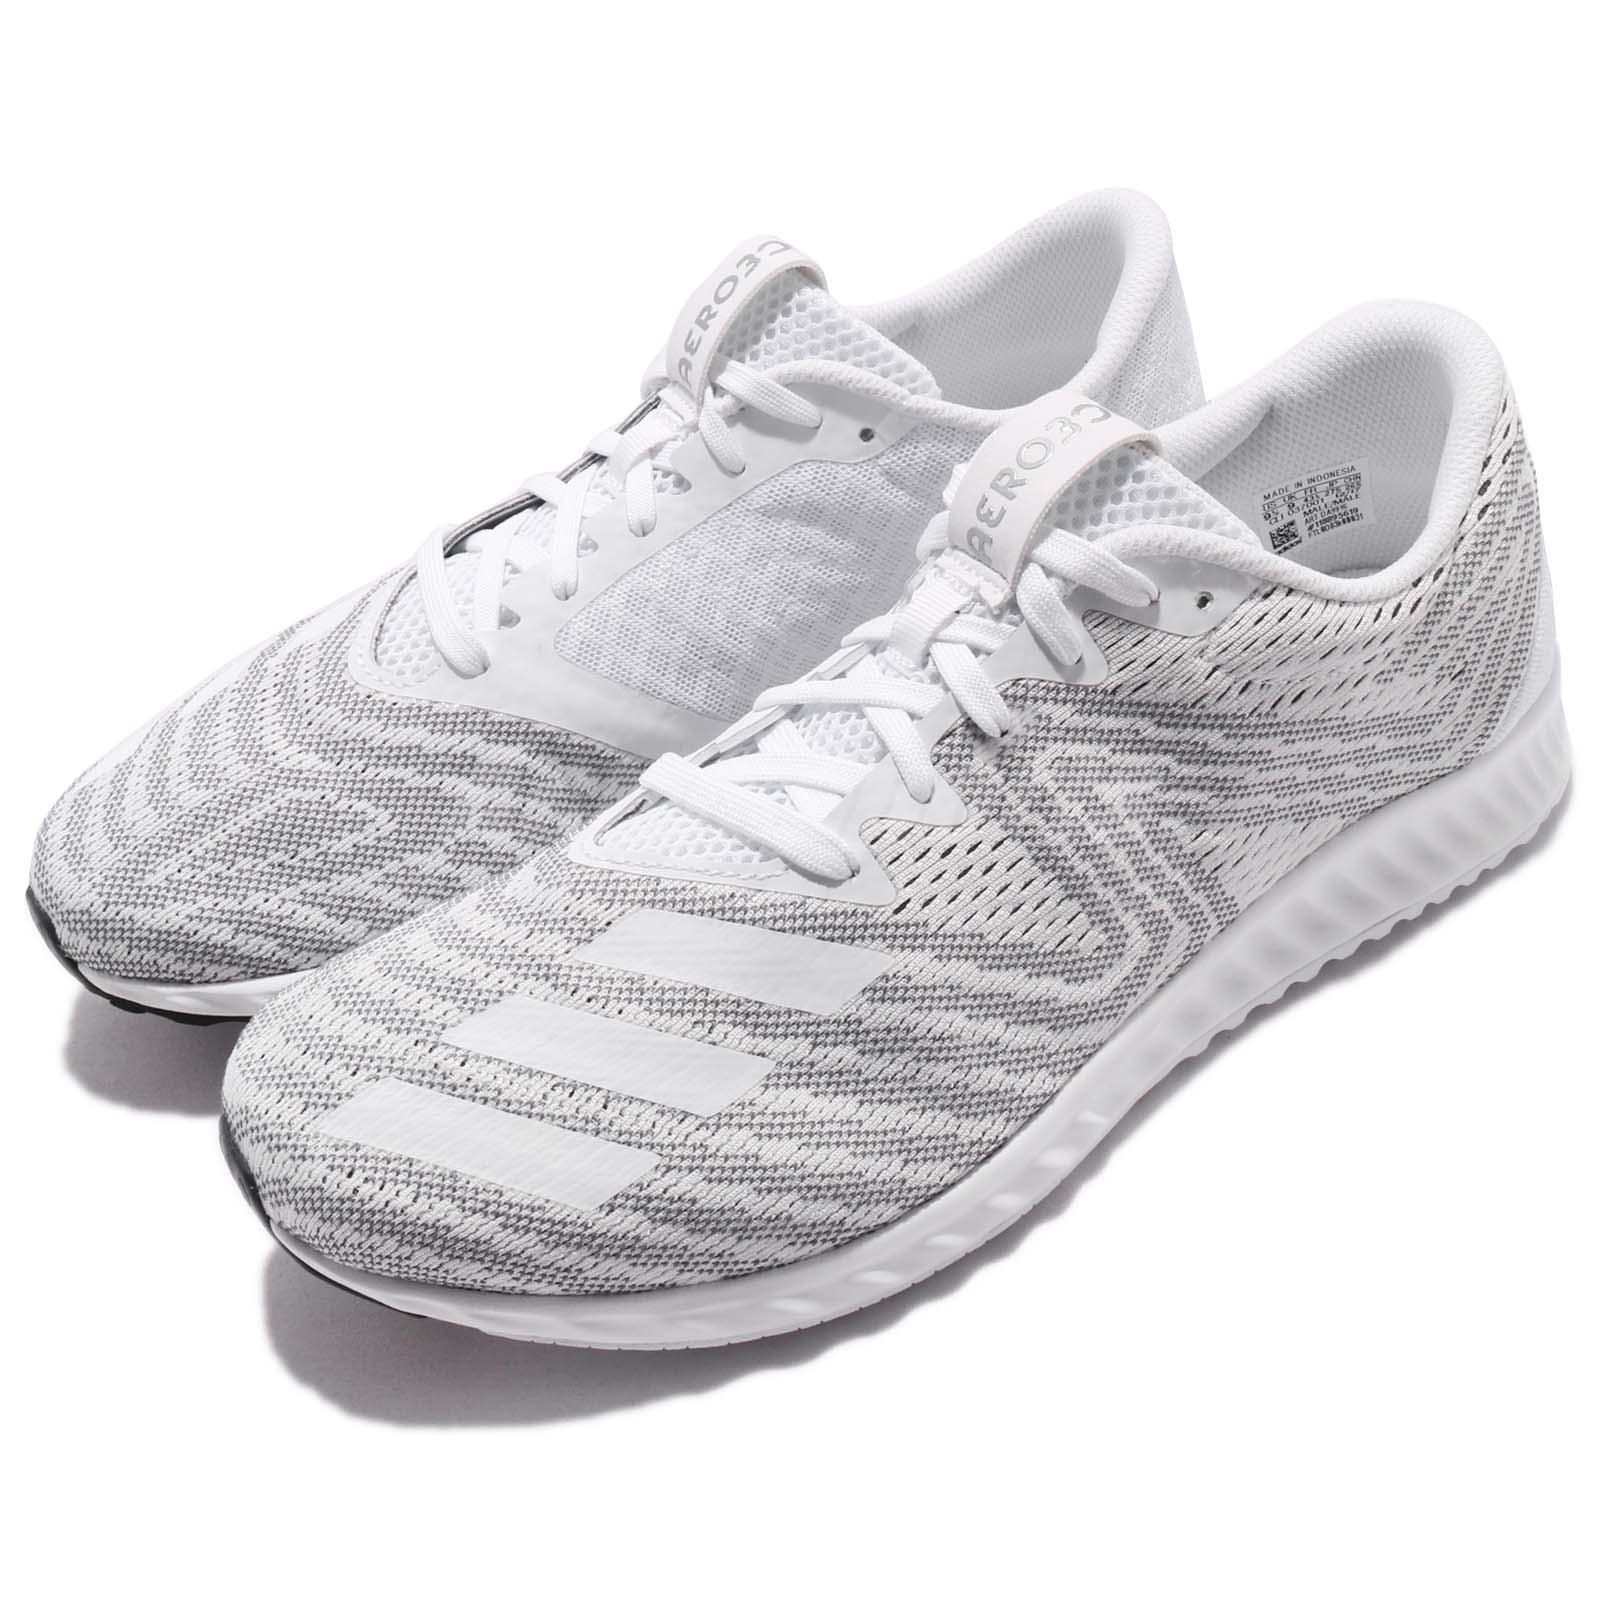 White And Silver Bounce Brand Shoes